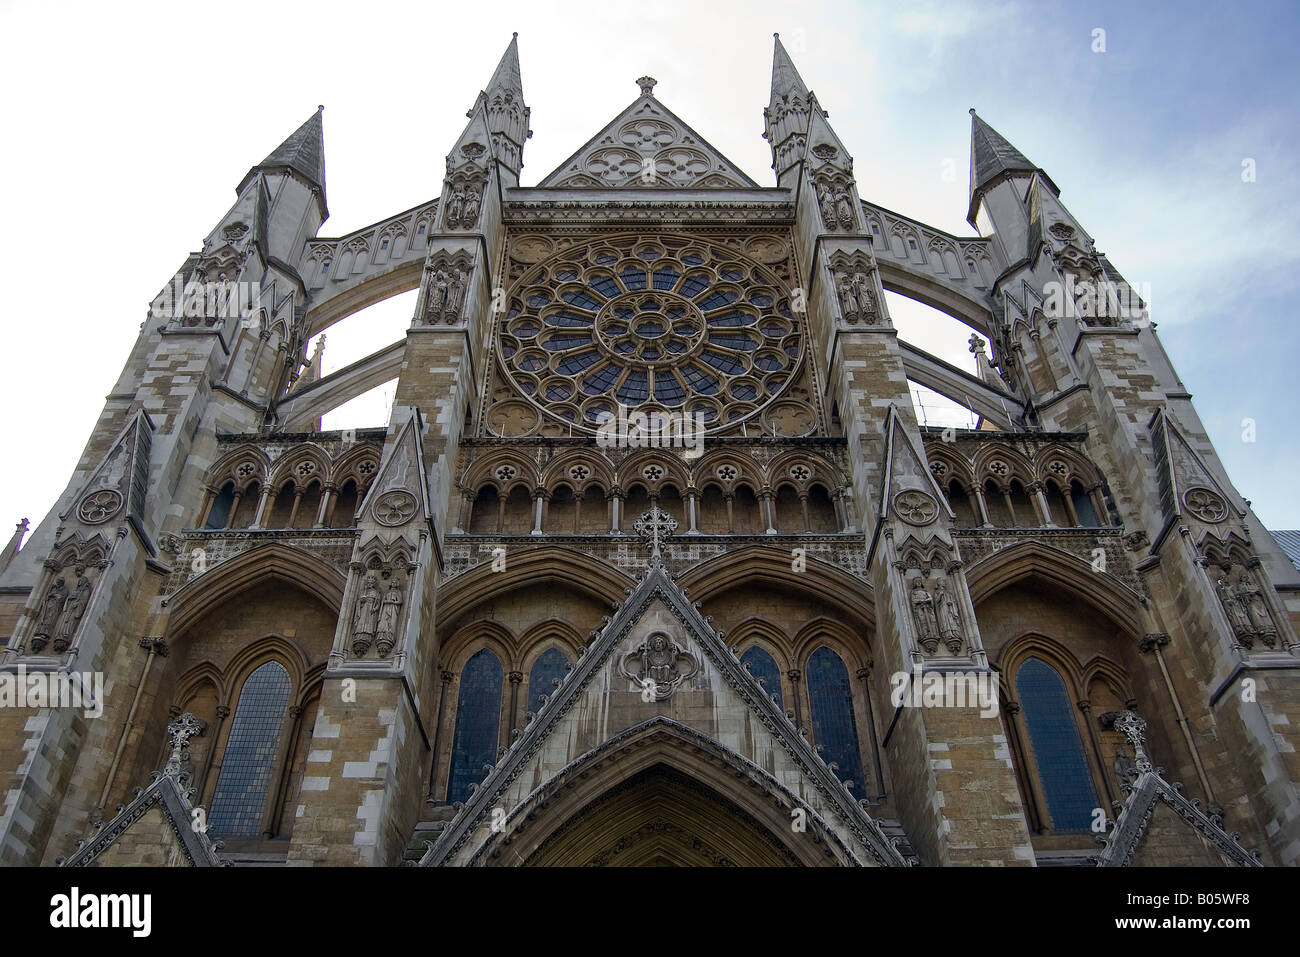 Looking up at the North Entrance of Westminster Abbey Stock Photo